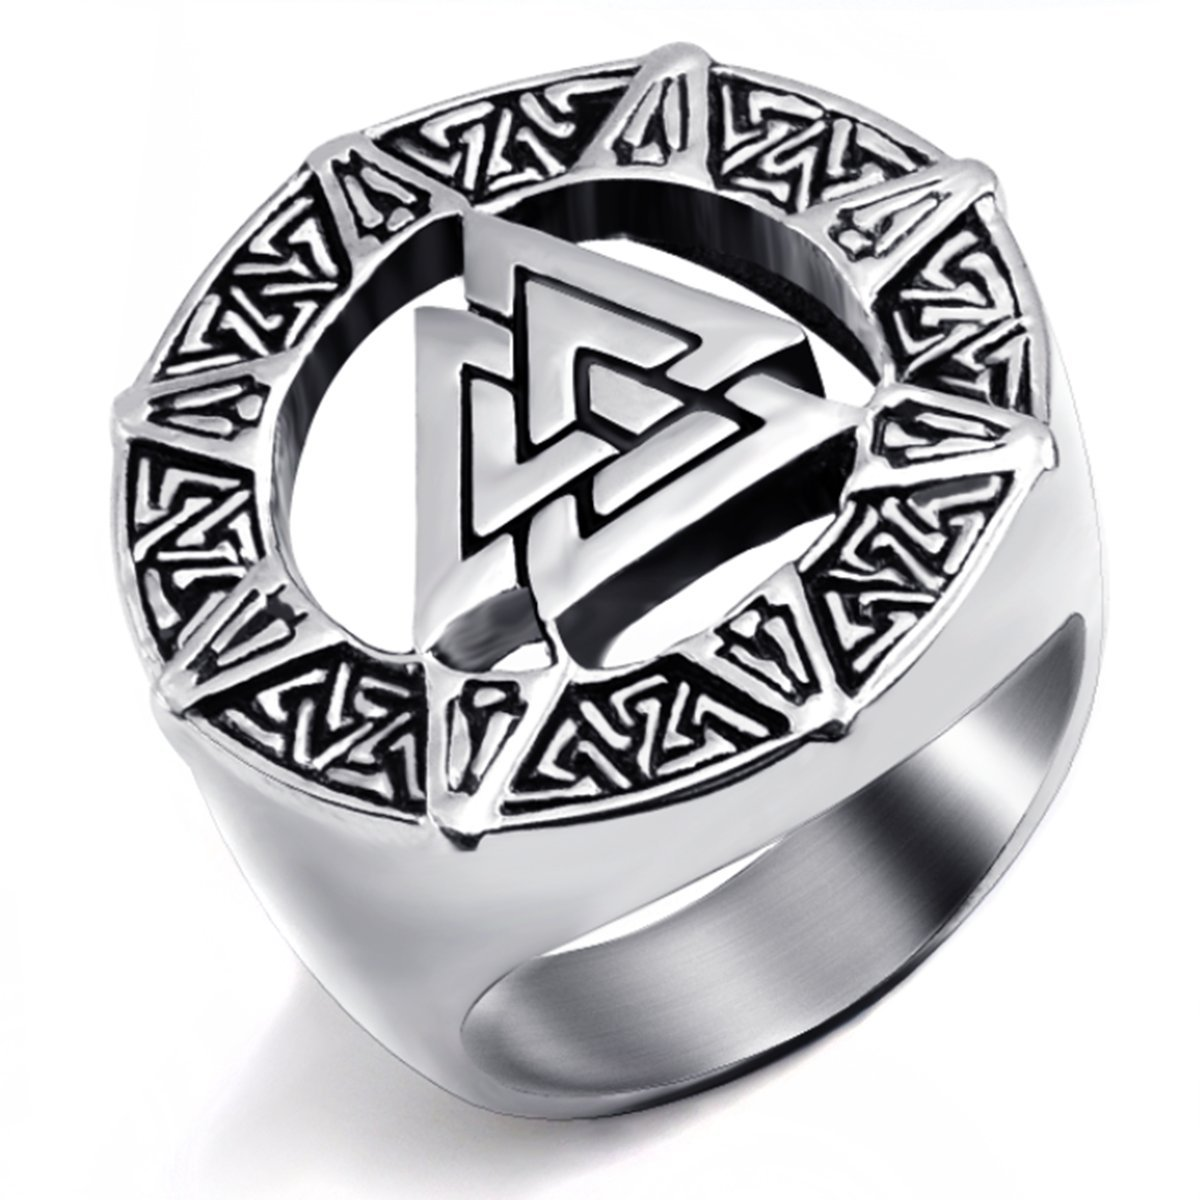 Elfasio Mens Stainless Steel Ring Band Valknut Scandinavn Odin Symbol Norse Viking Biker Jewelry Size 8-14 (10)